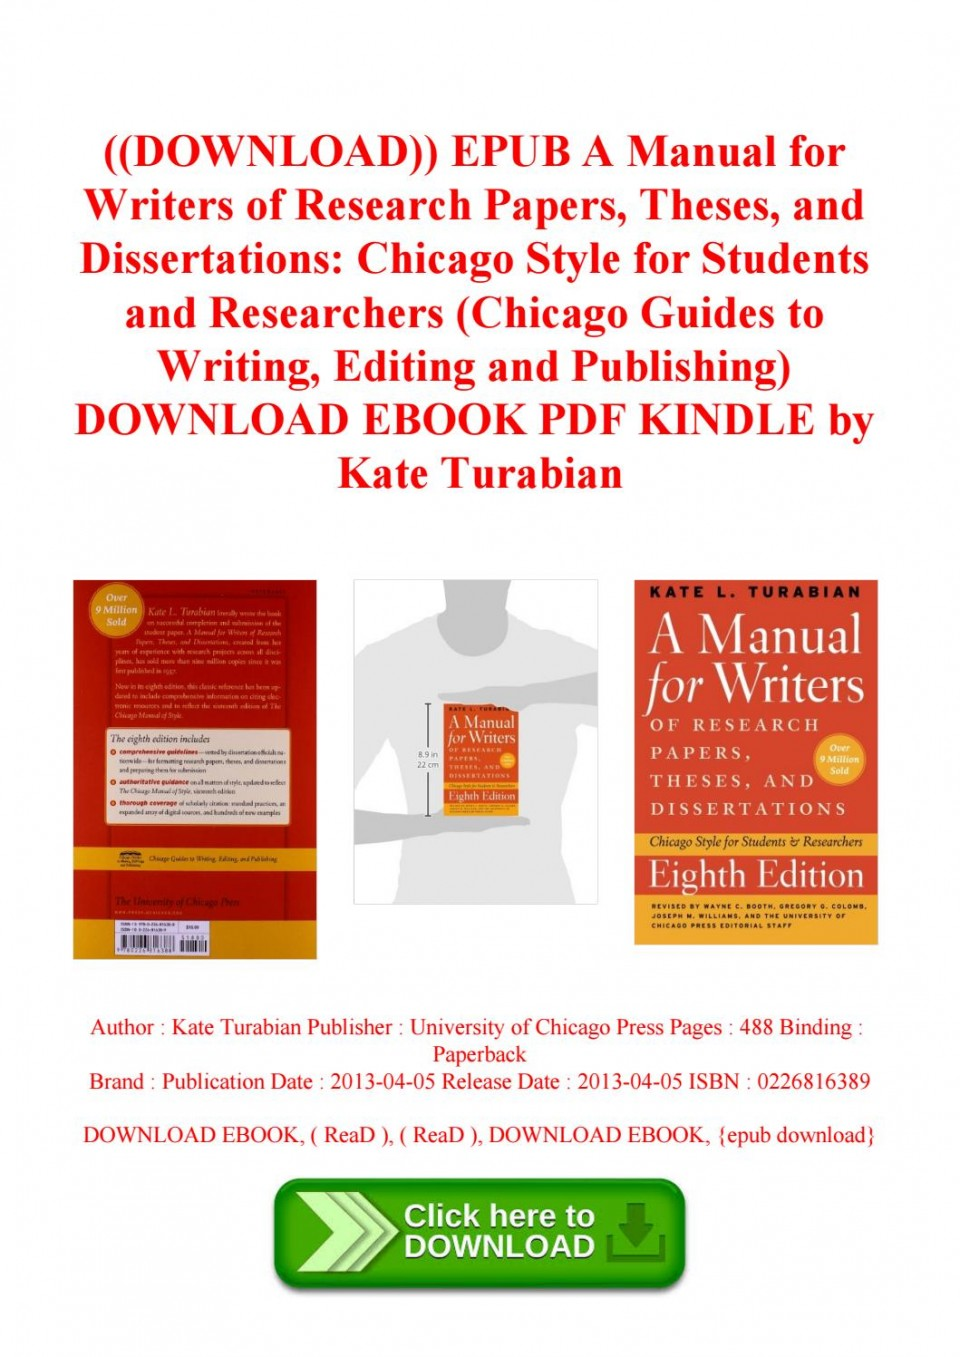 006 Manual For Writers Of Research Papers Theses And Dissertations Ebook Paper Page 1 Unbelievable A 960